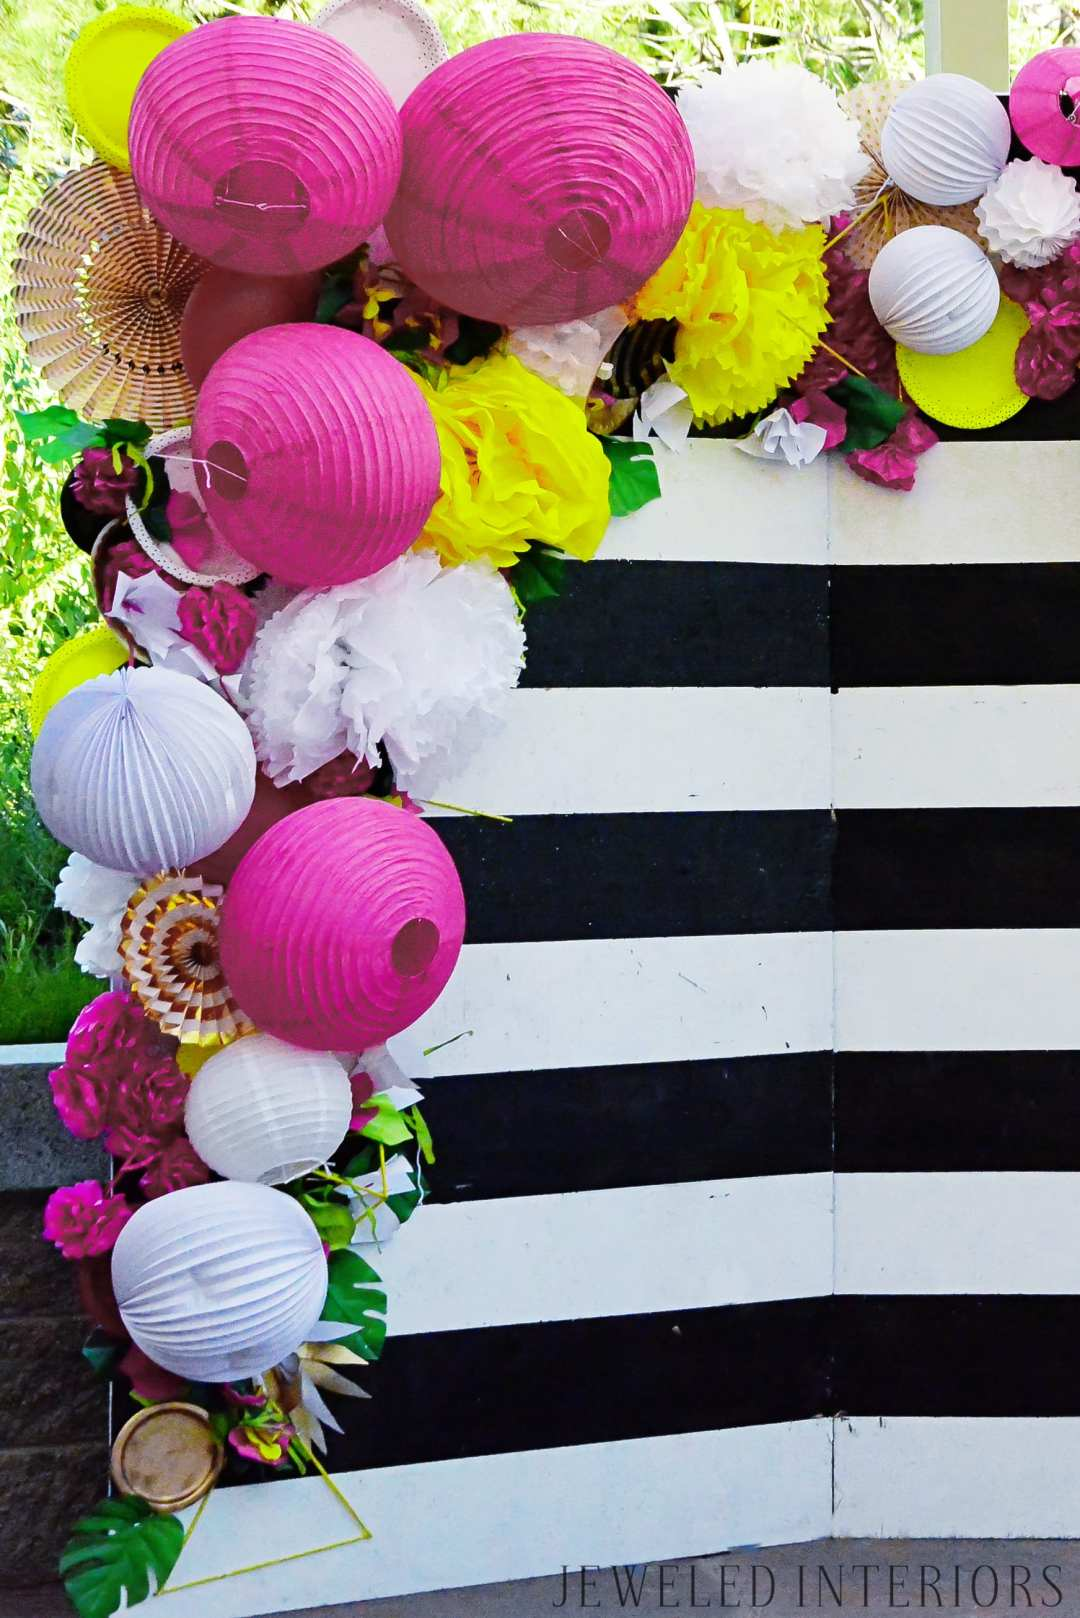 Decorations, decorate, Pineapple, welcome, party, celebration, extravaganza, photo, booth, back drop, candle, DIY, inexpensive, cheap, paper, flowers, hibiscus, welcome, friends, buffet, table, tablescape, napkin, ring, sea shell, sea shells, black, white, gold, purple, fuschia, neon, yellow, green, inexpensive